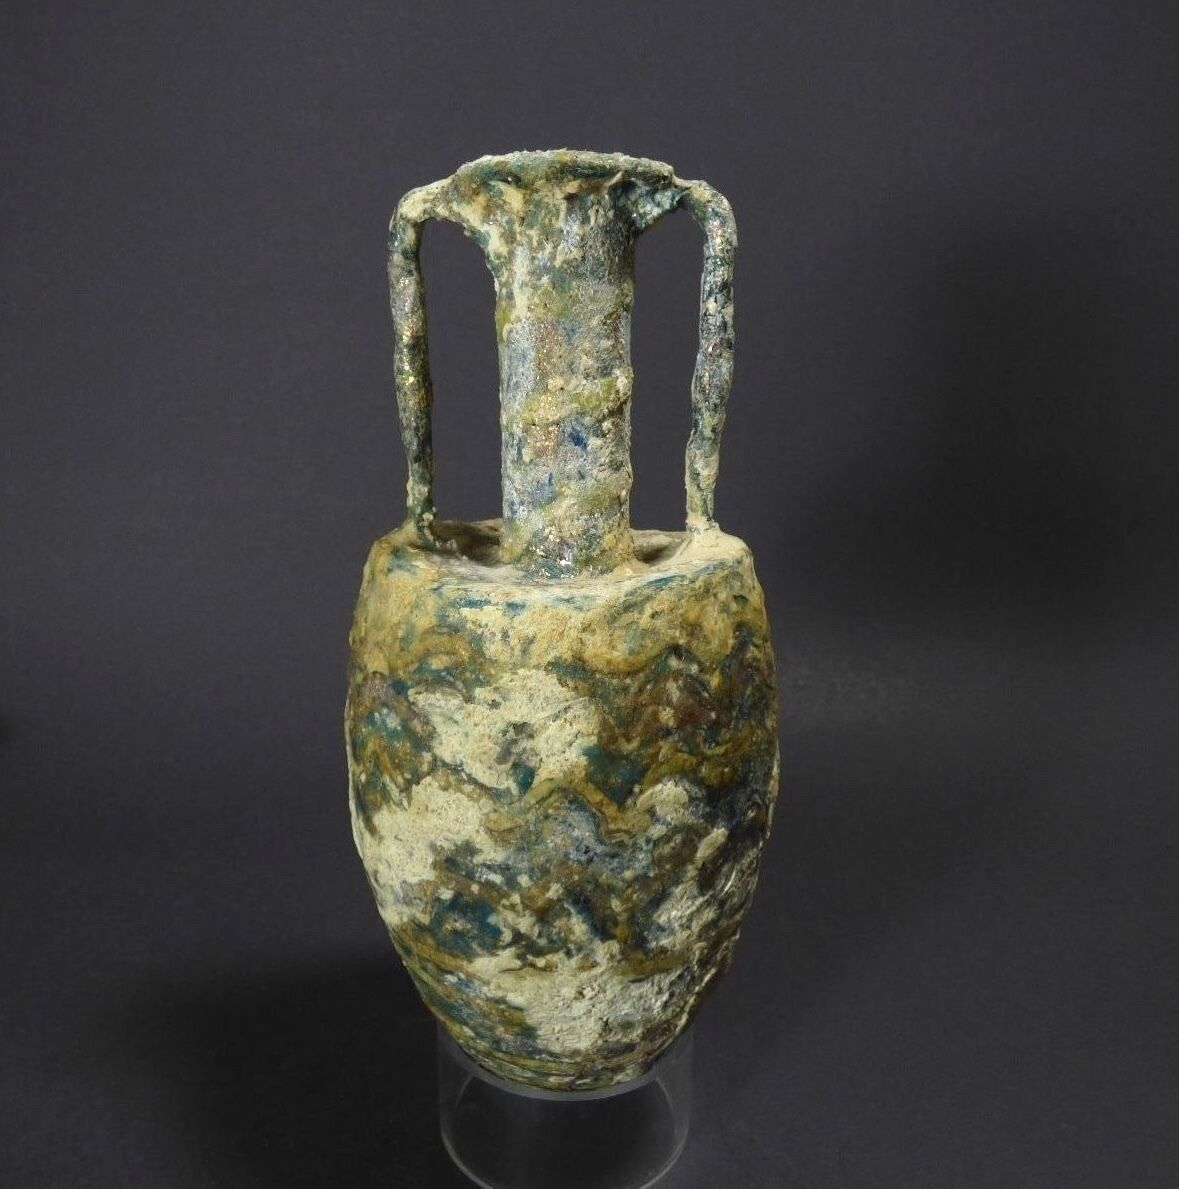 *aphrodite Gallery* Ancient Large Islamic Core Formed Glass Amphora